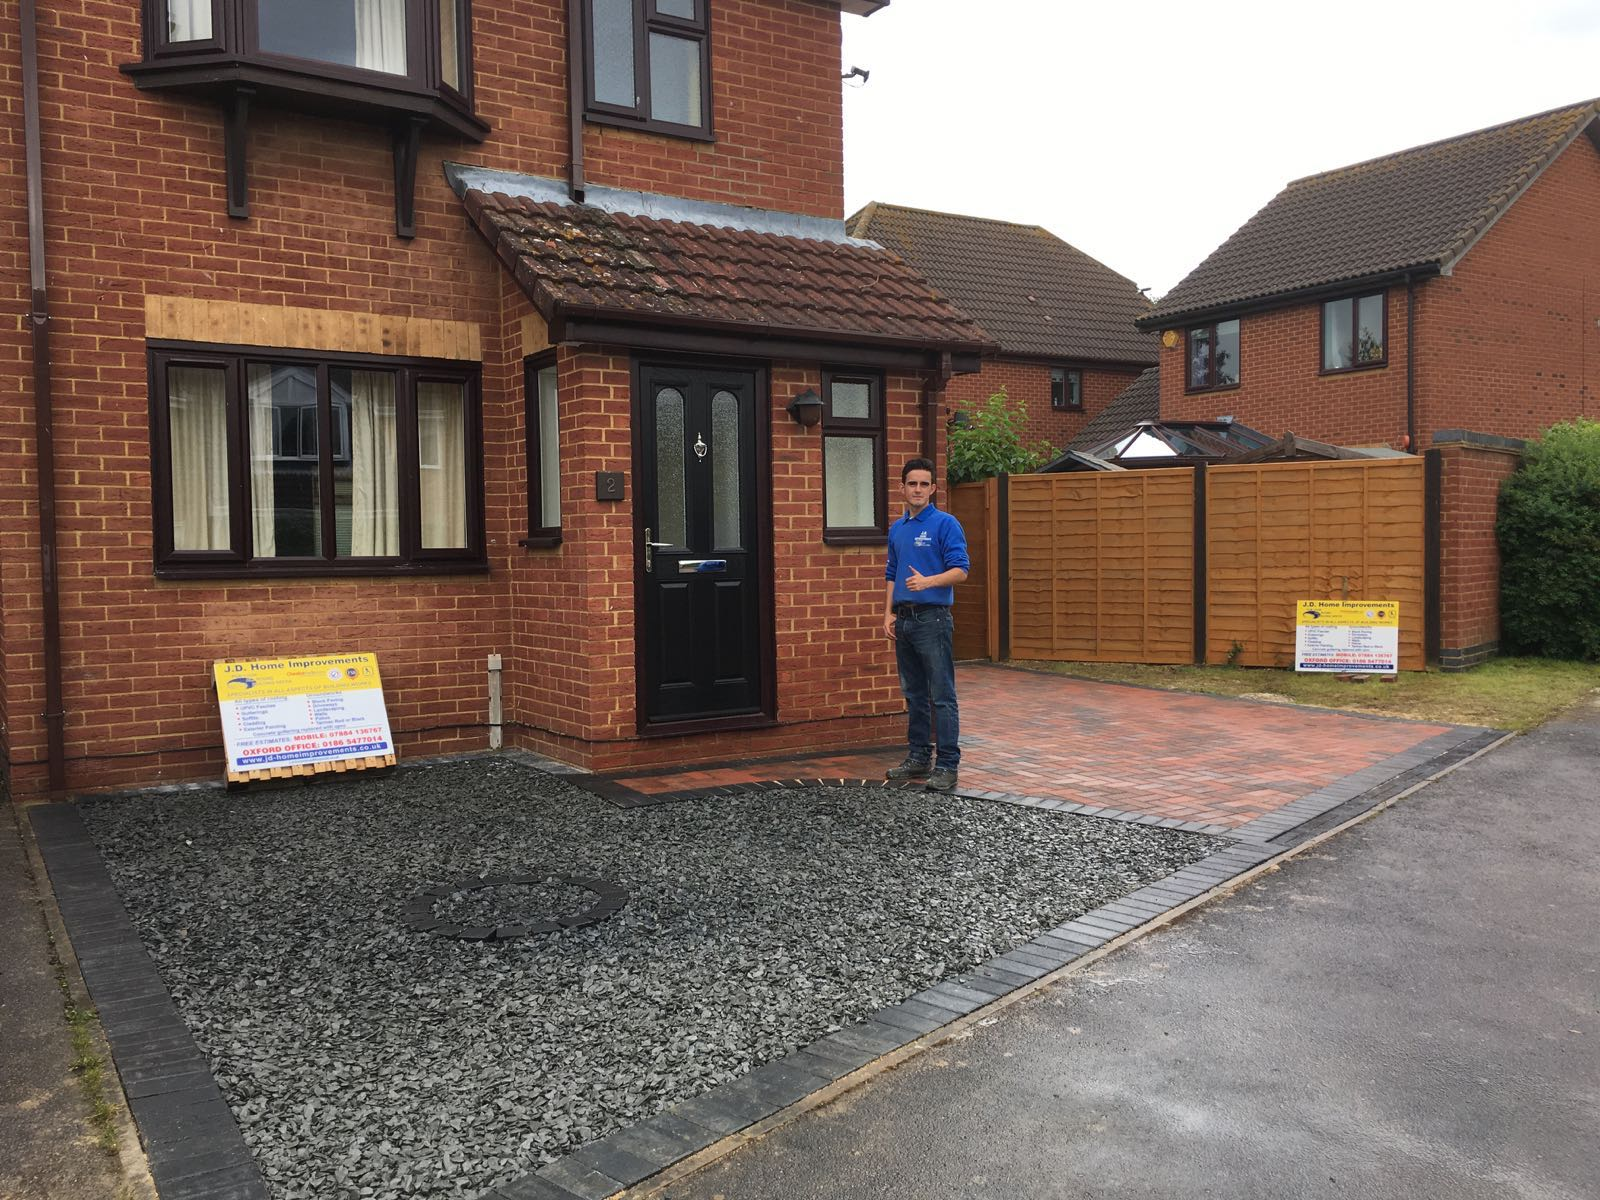 recent project for driveways in Filton - image shows a block paving driveway